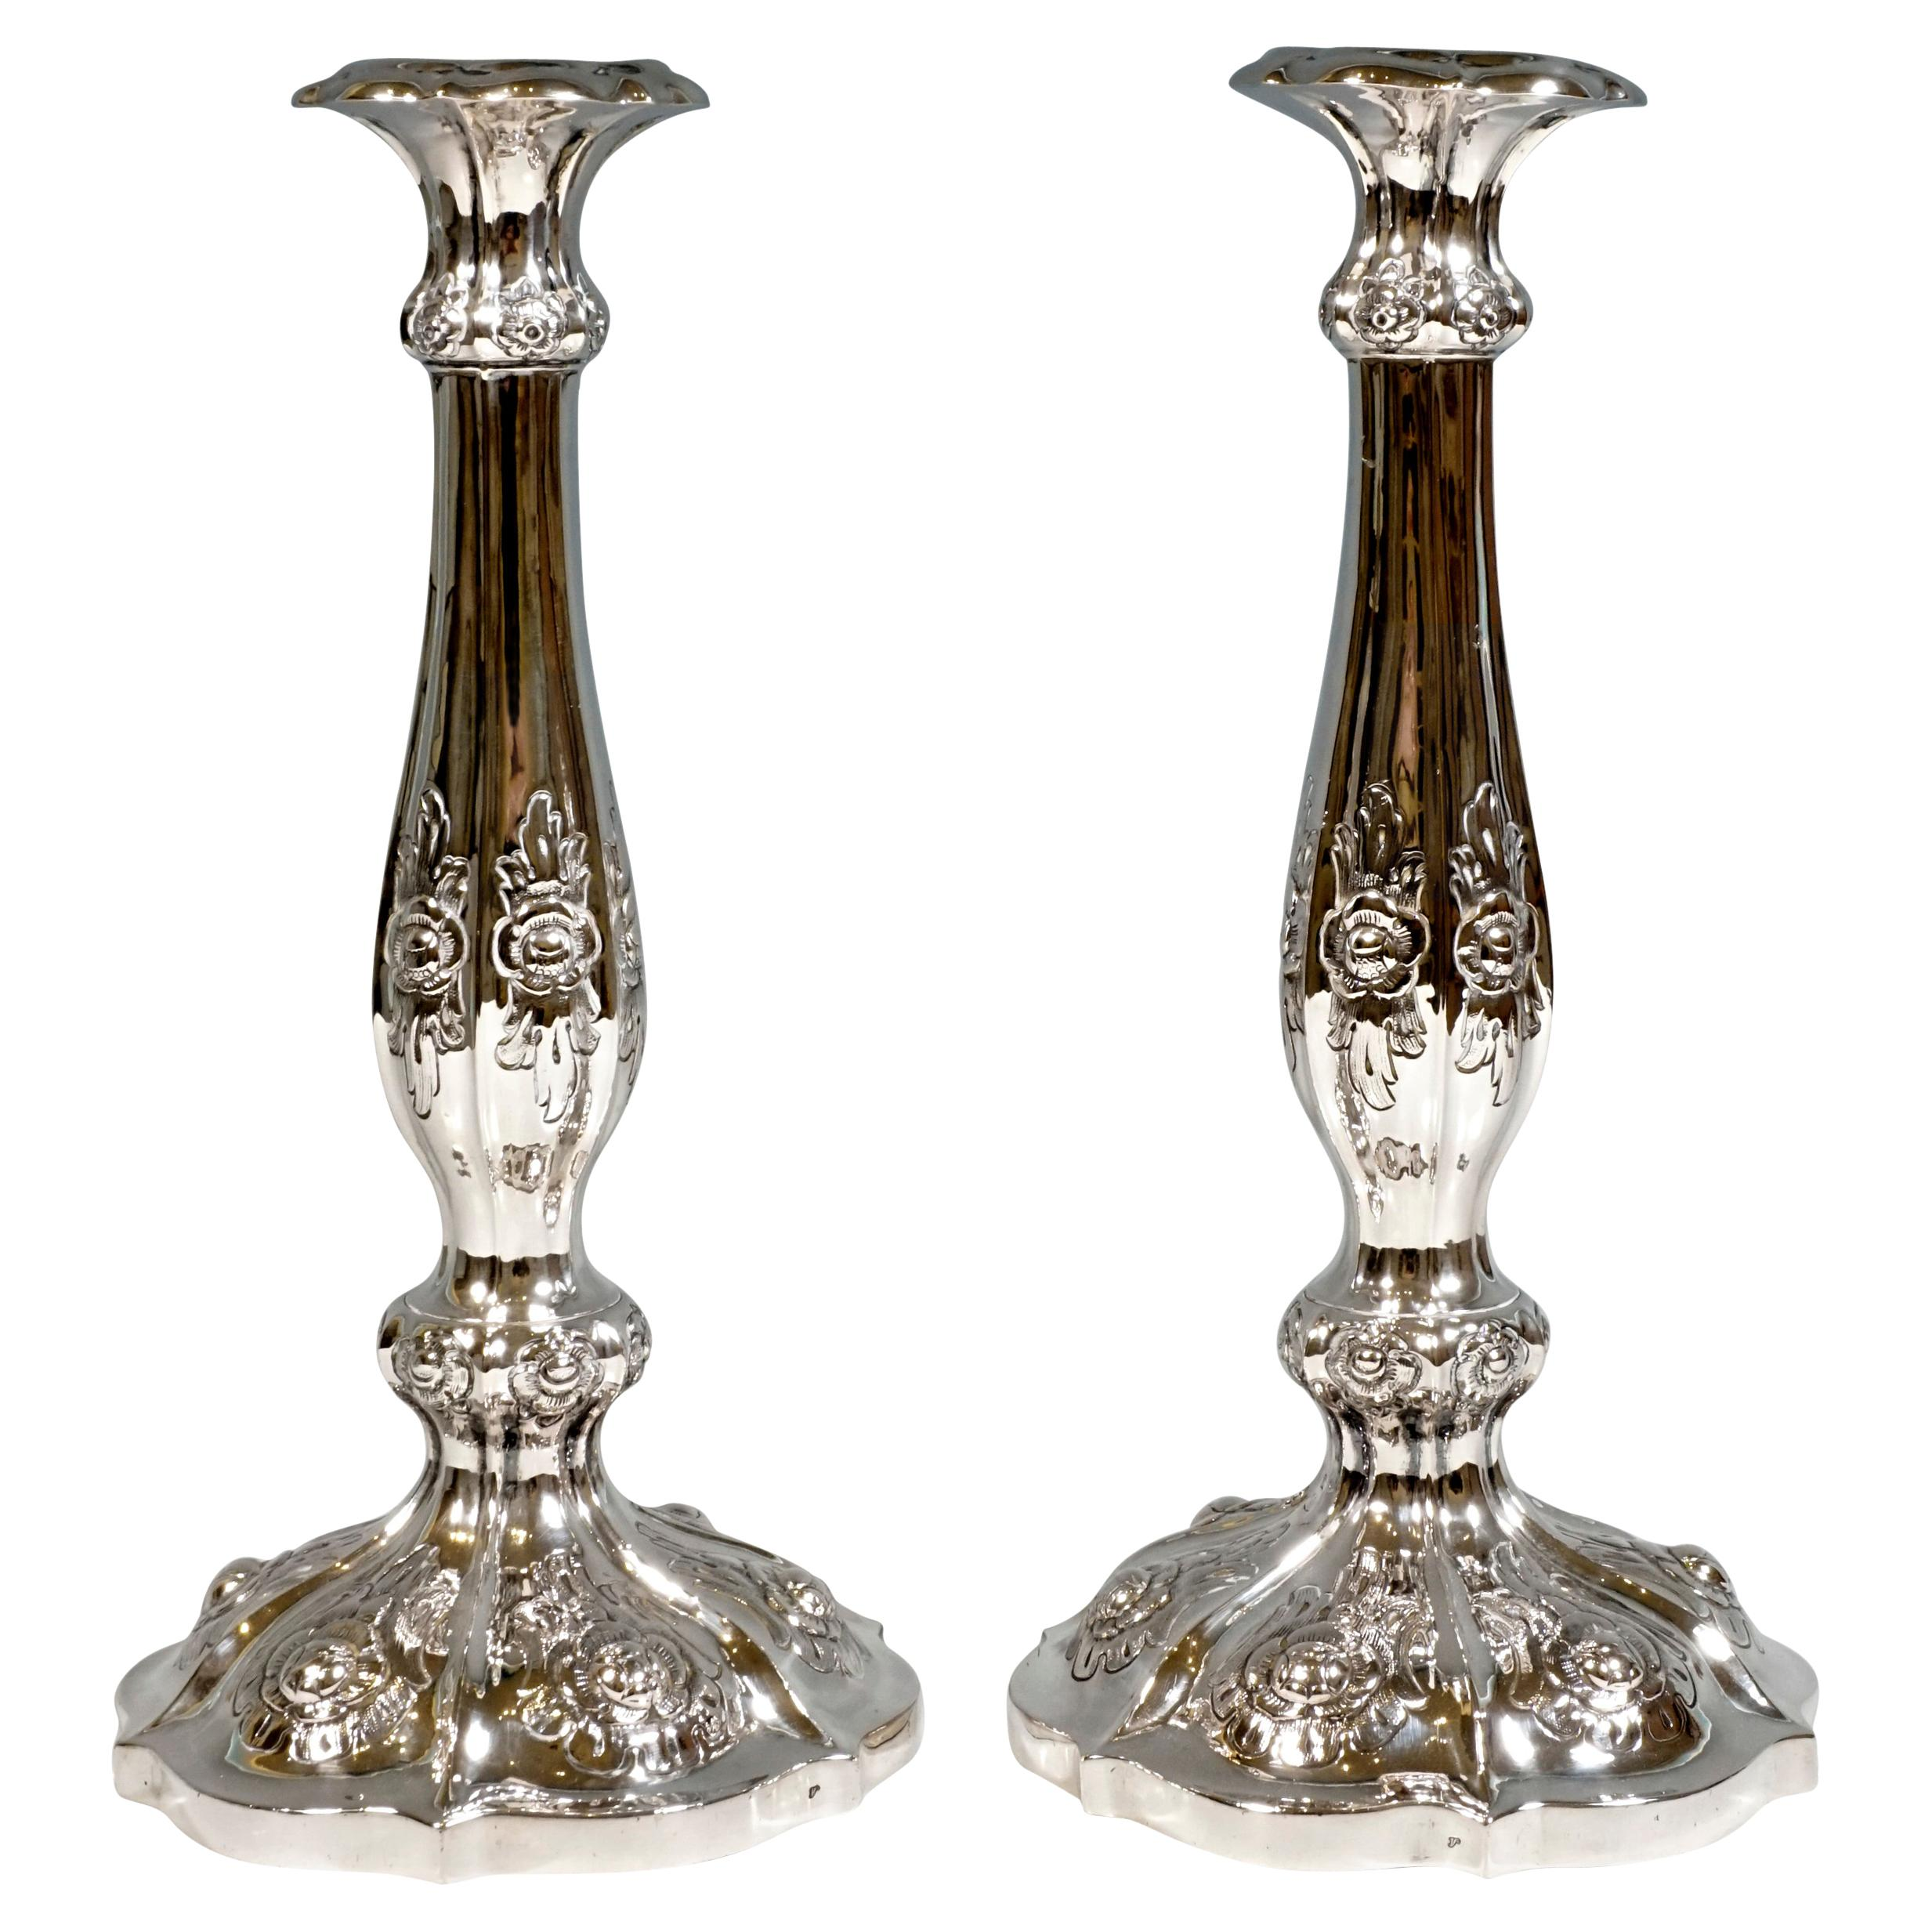 Pair of Antique Vienna Biedermeier Silver Candle Holders, Dated 1856